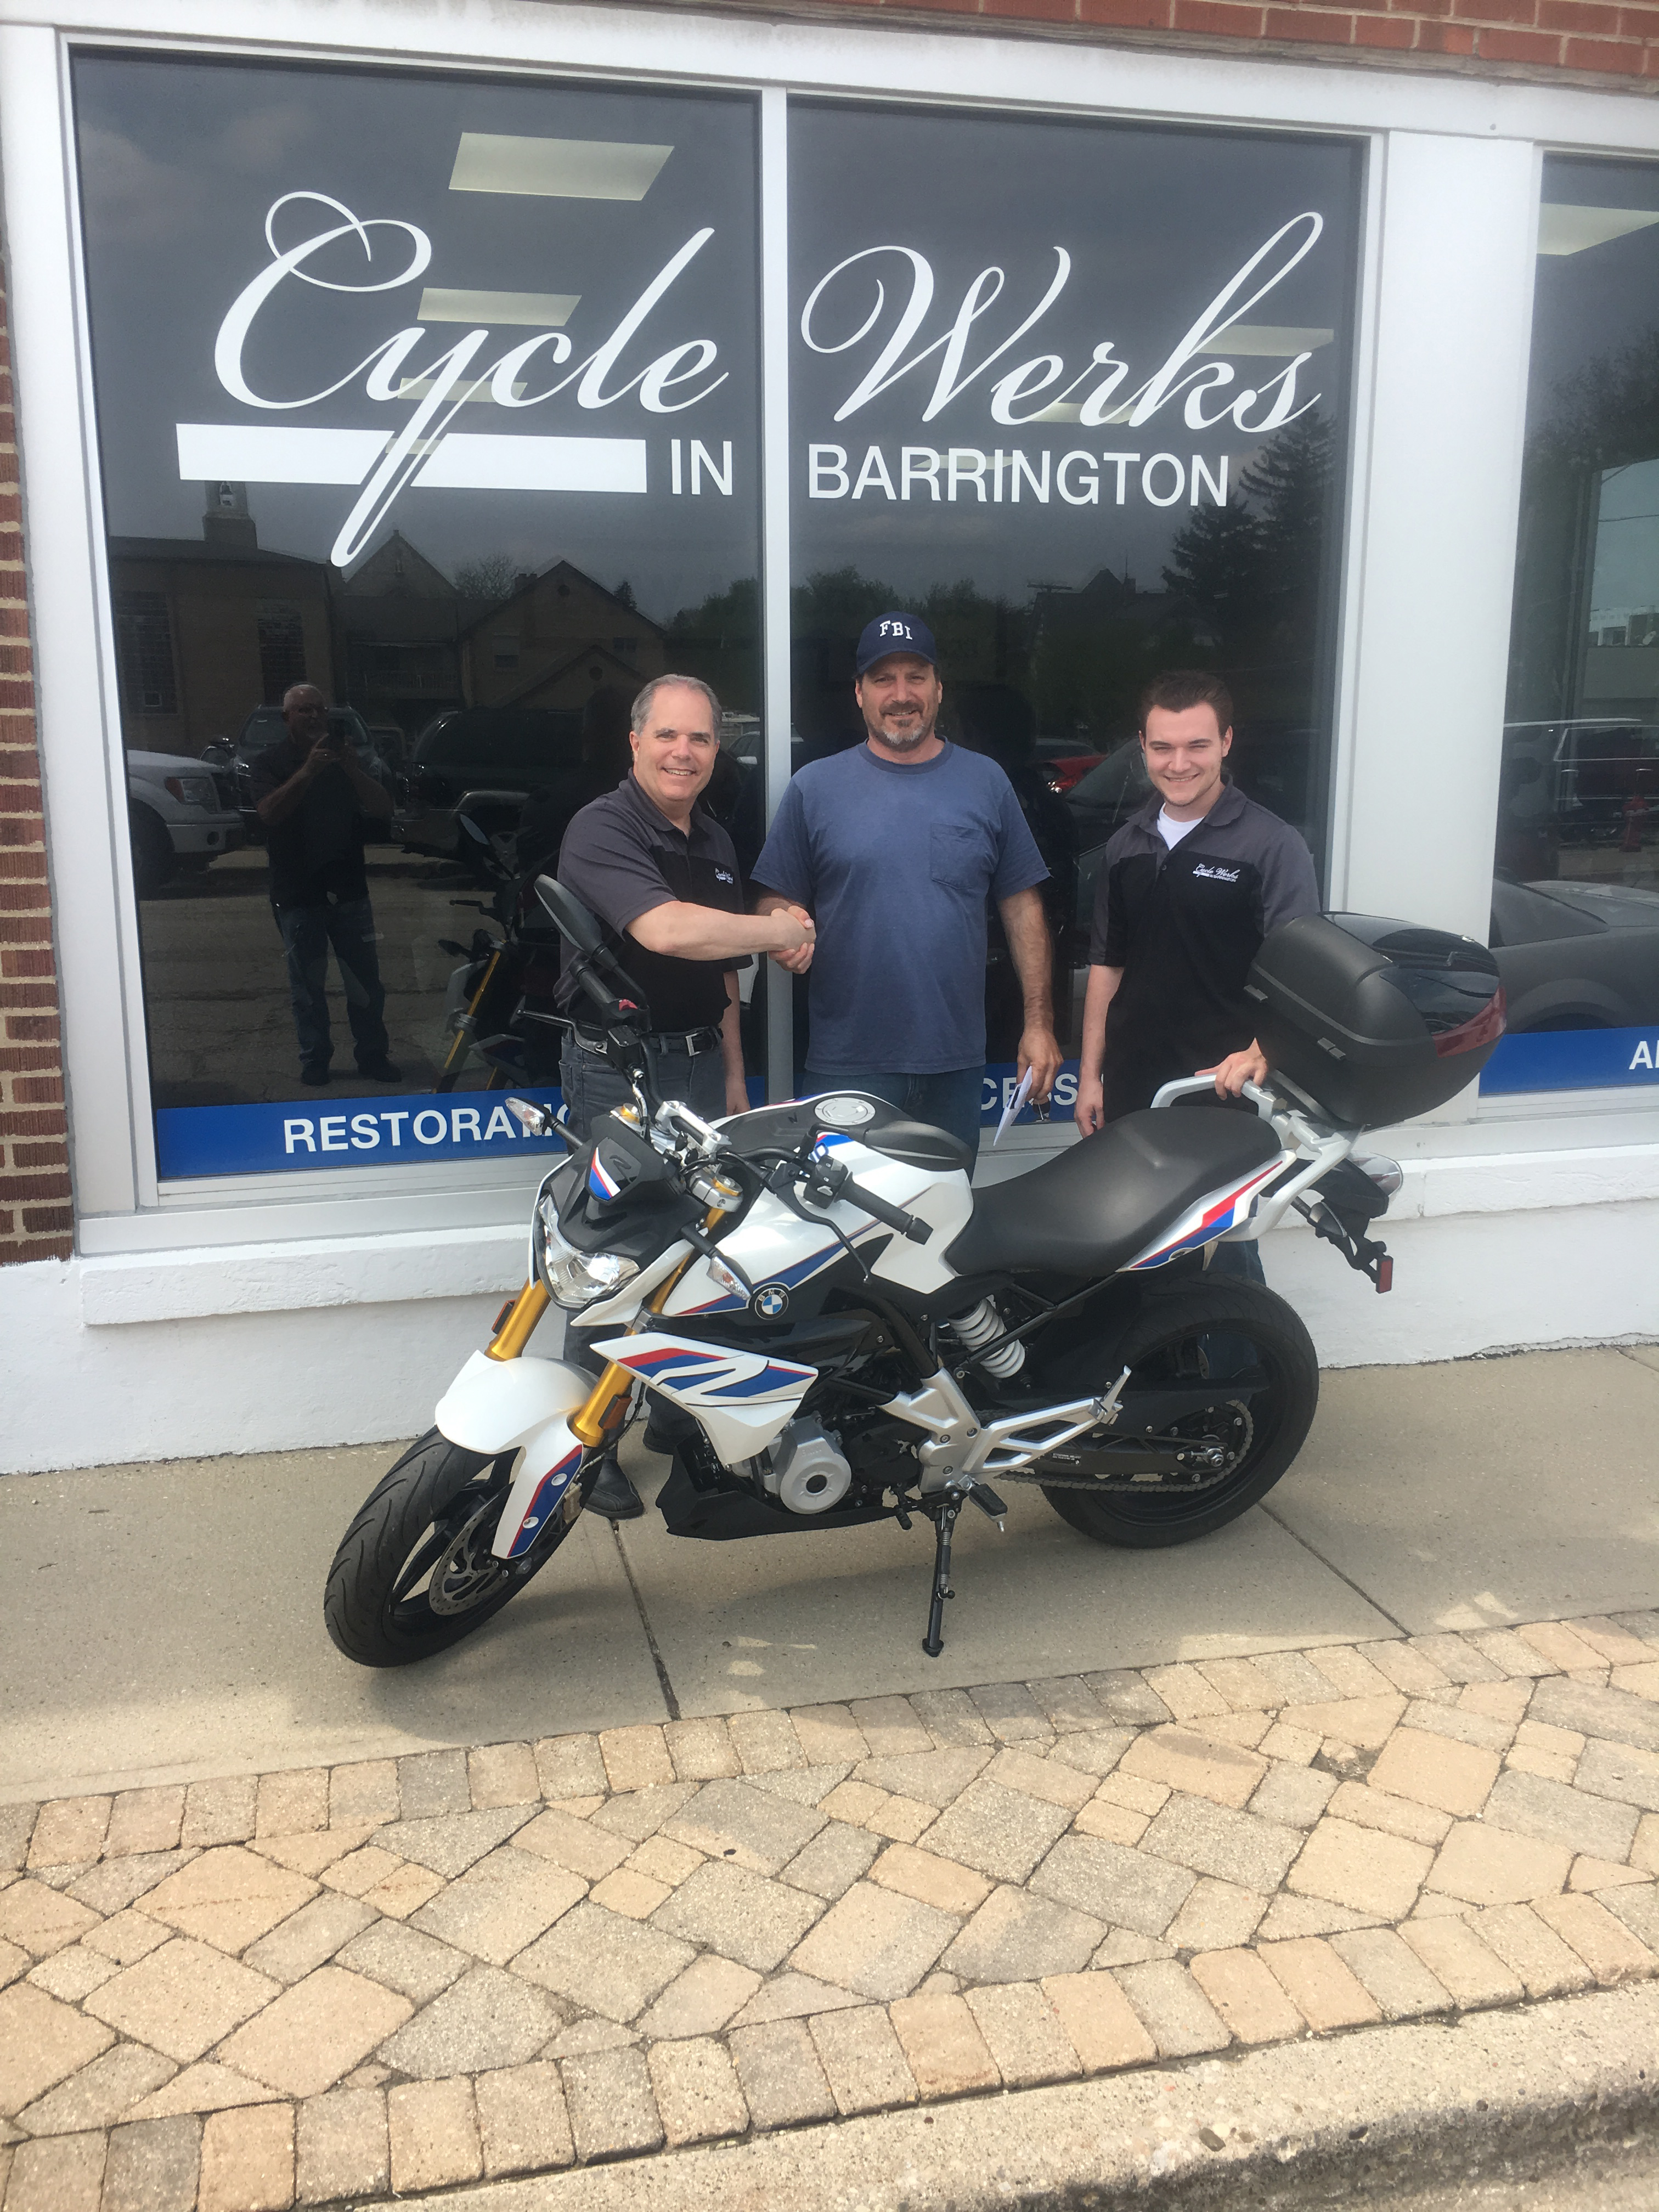 Steve Boydston with his 2018 BMW G 310 R